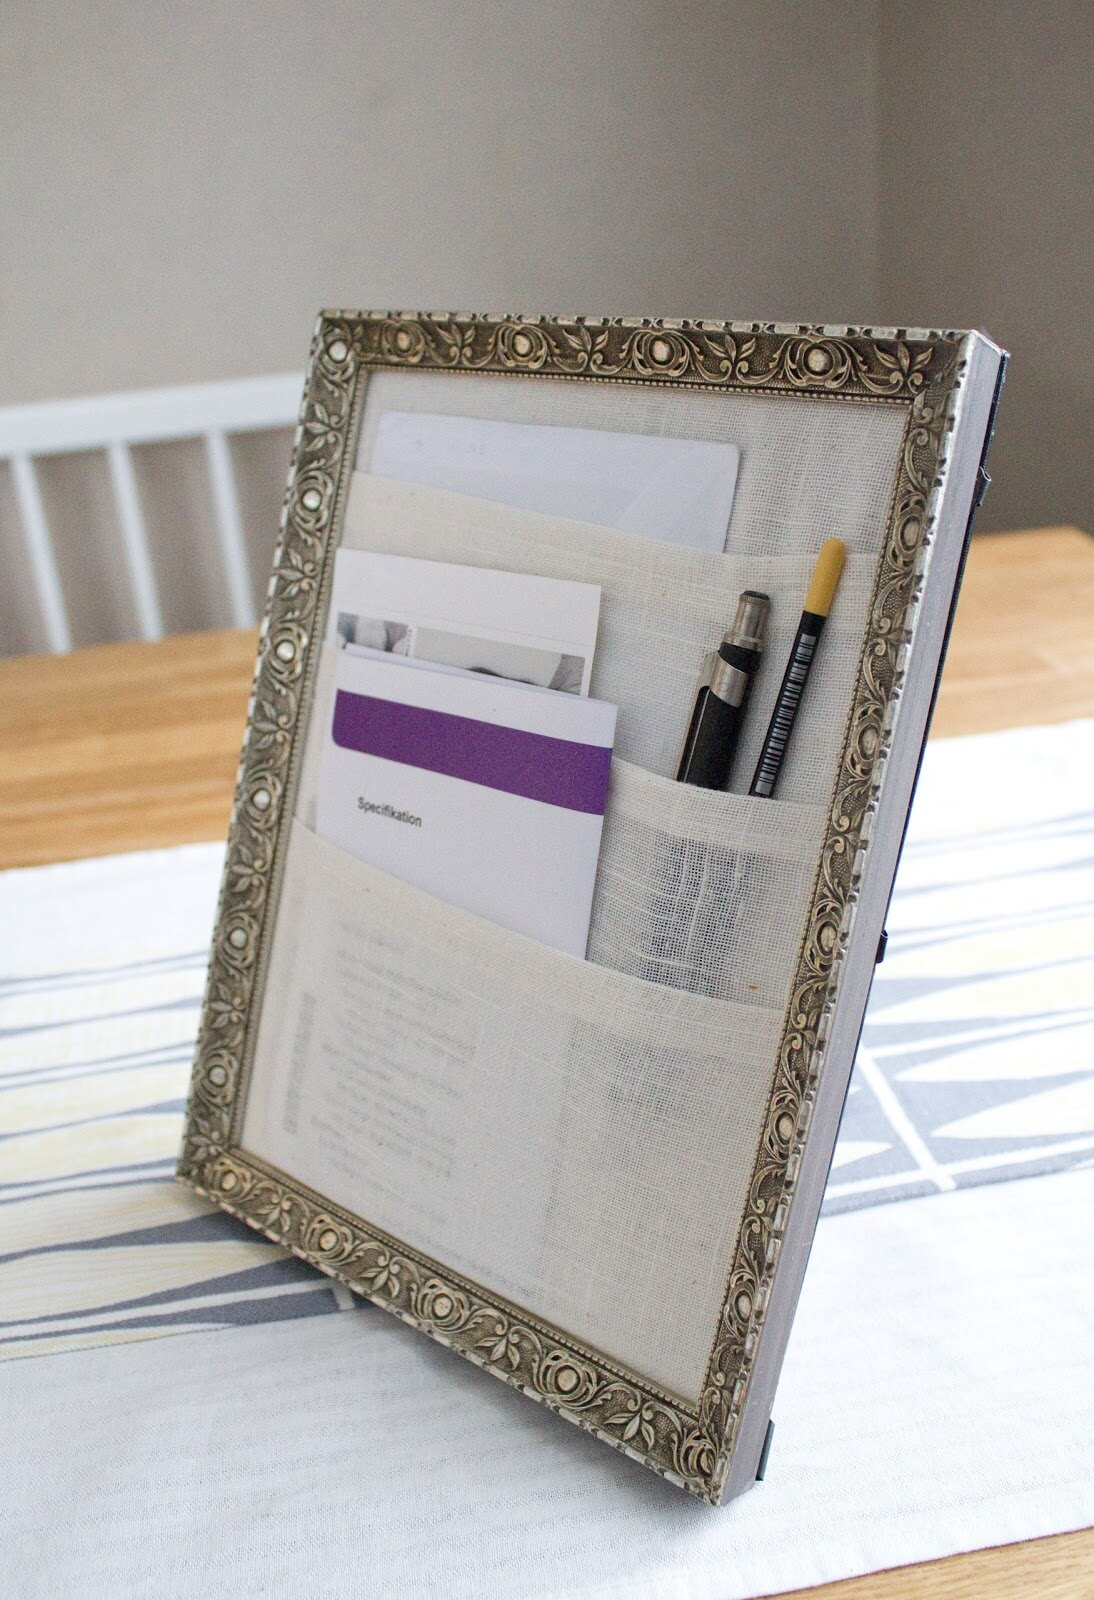 Table Top Organizer Using a Dollar Frame